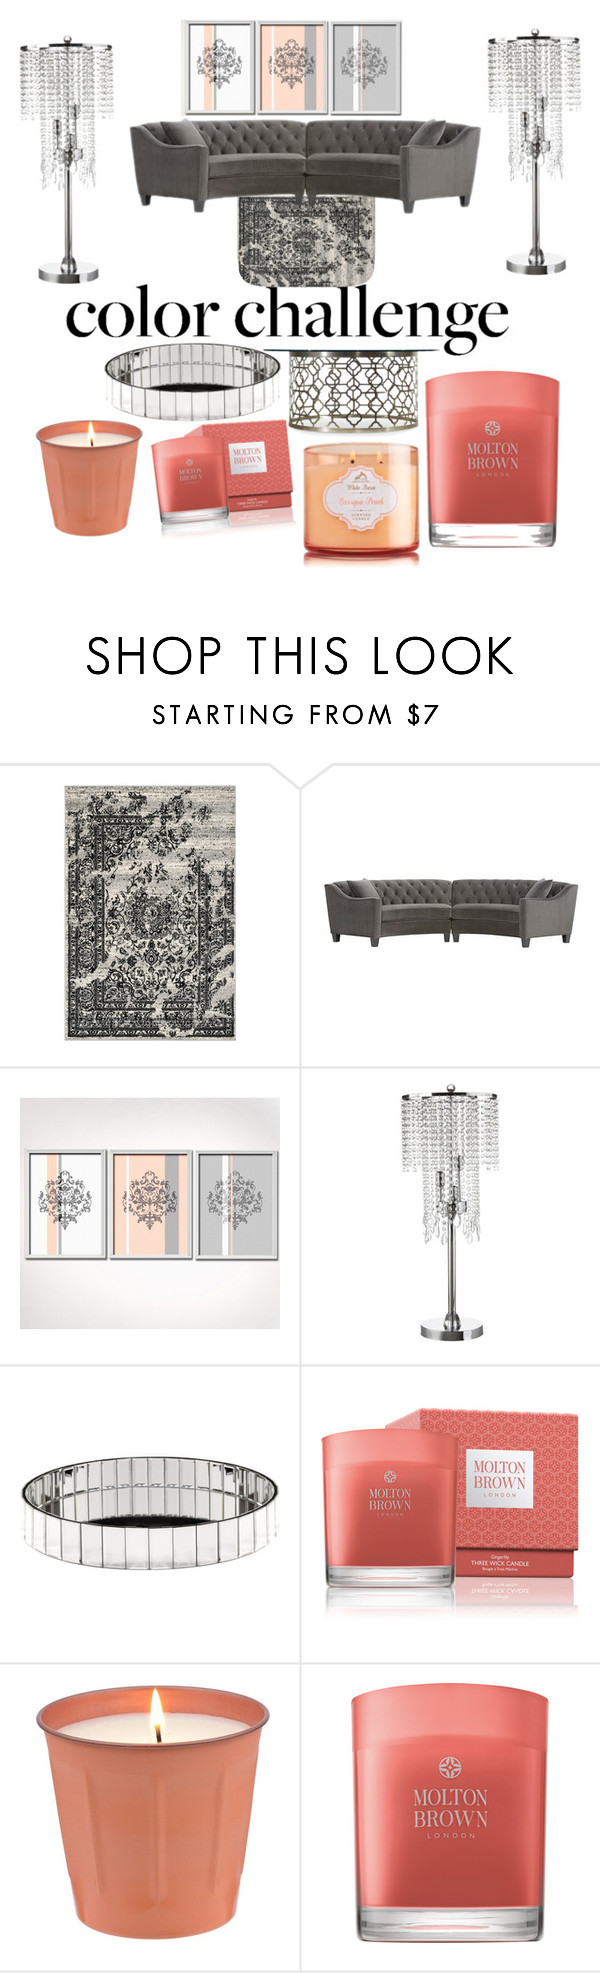 """""""Untitled #61"""" by mranicayla on Polyvore featuring interior, interiors, interior design, home, home decor, interior decorating, Home Decorators Collection, WALL, Inspire Q and Hooker Furniture"""